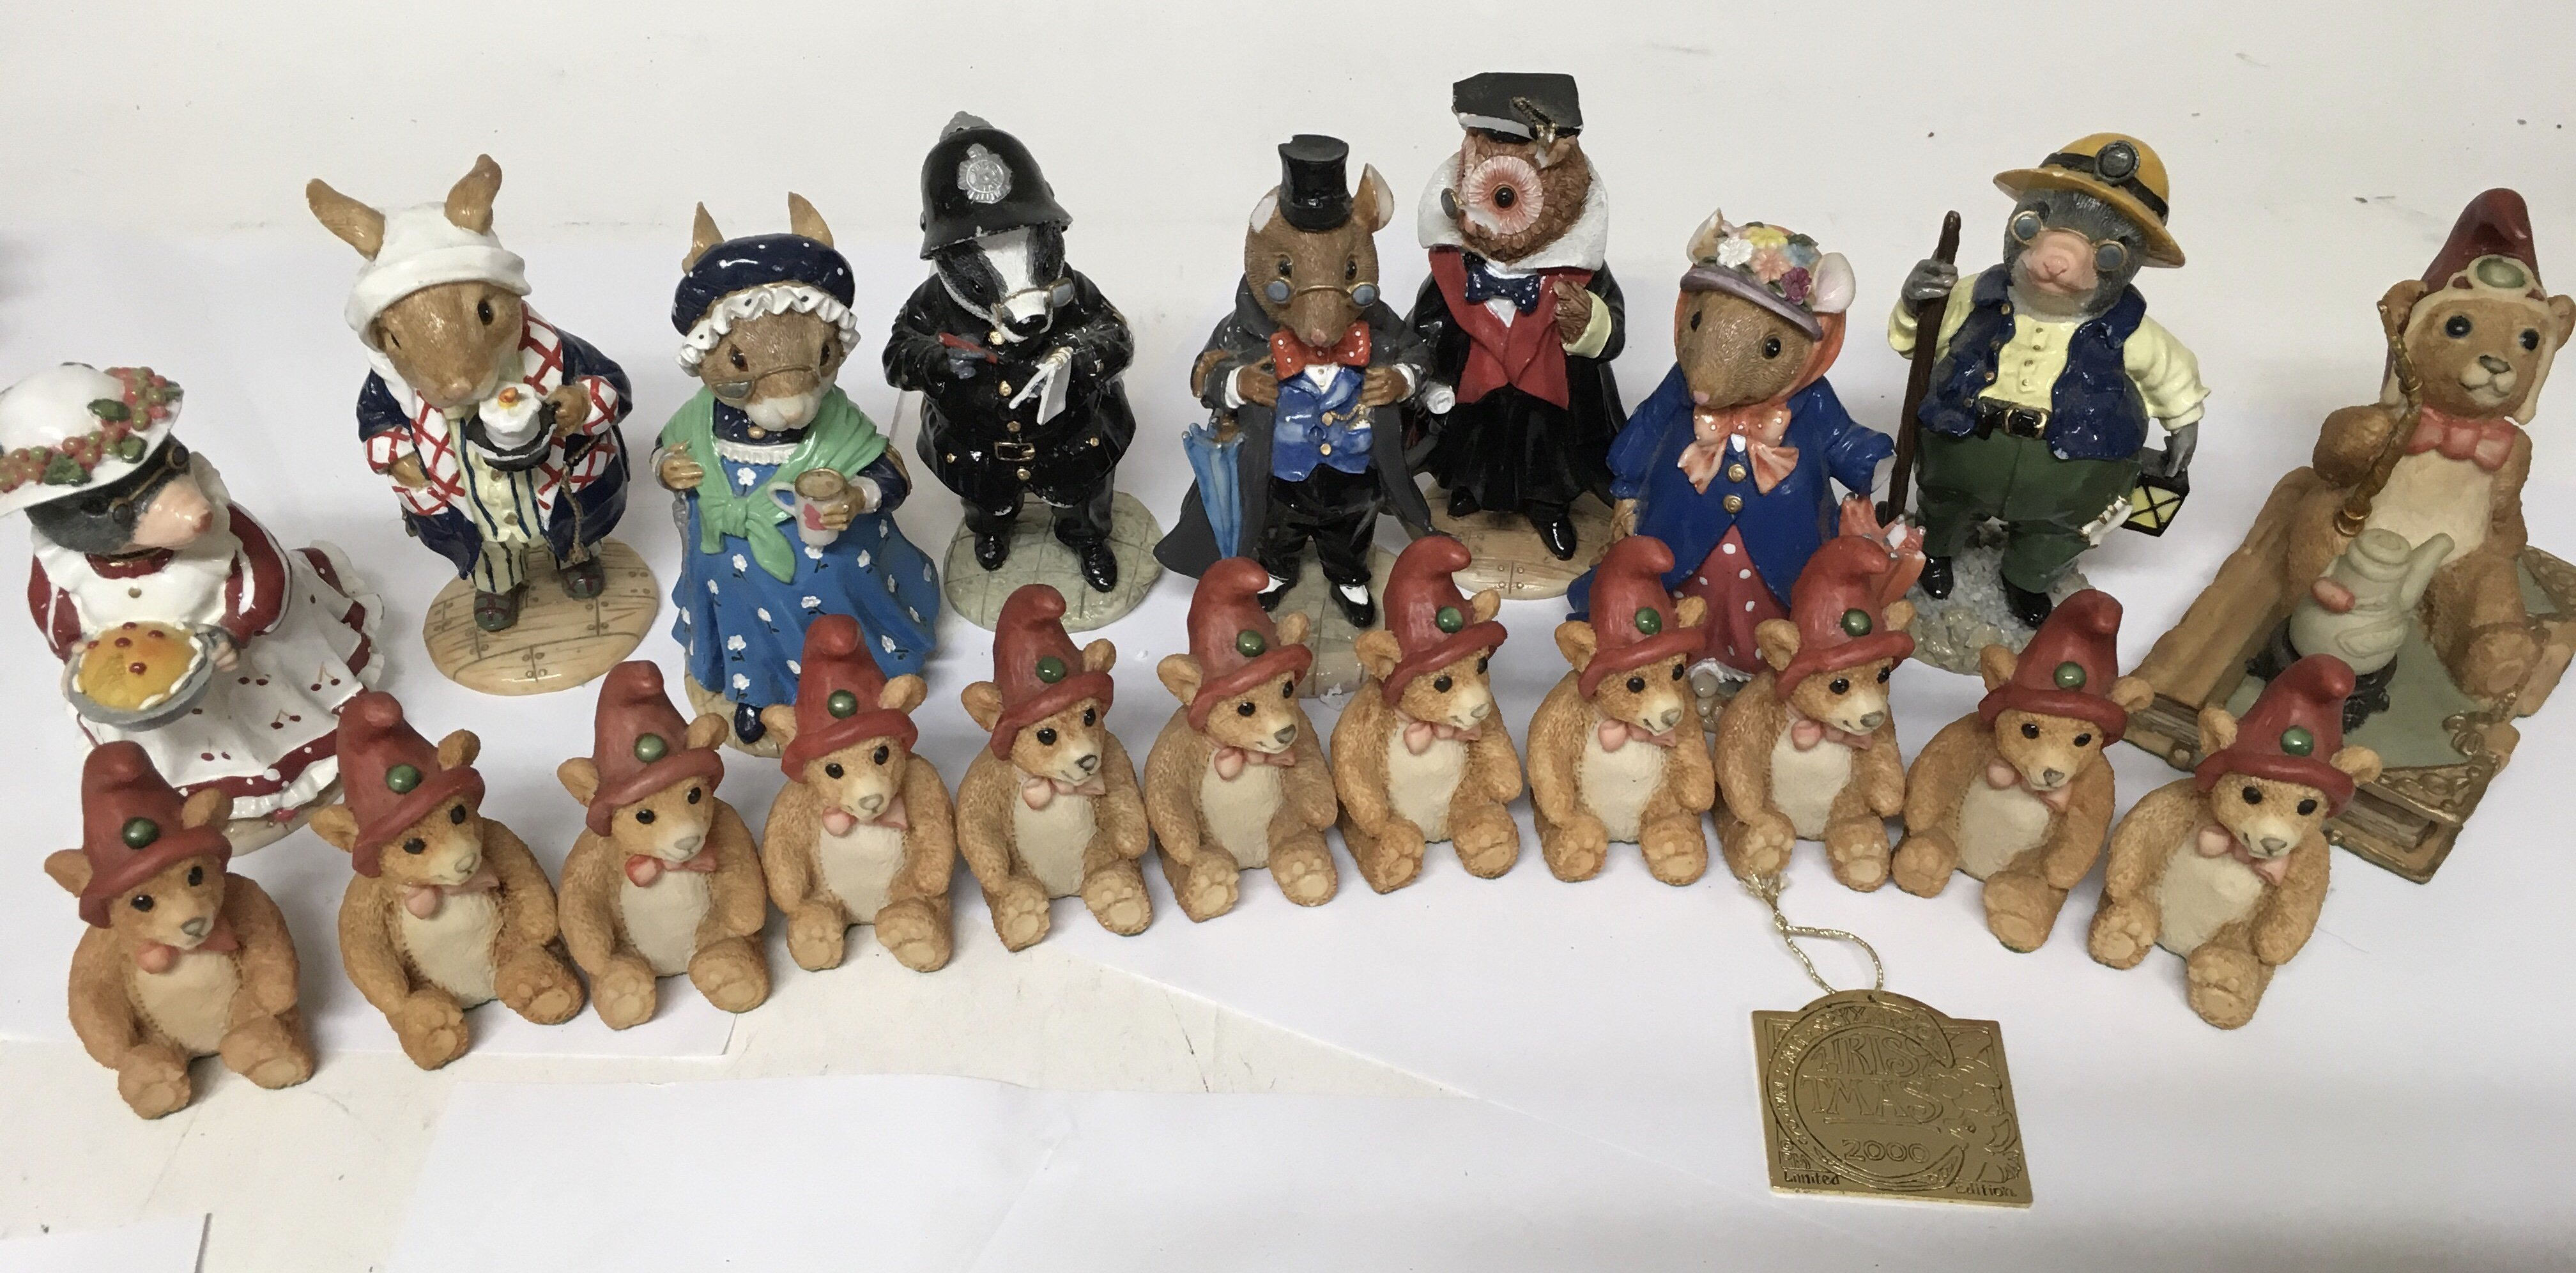 Lot 736 - A collection of animal figures from 'The Tales of